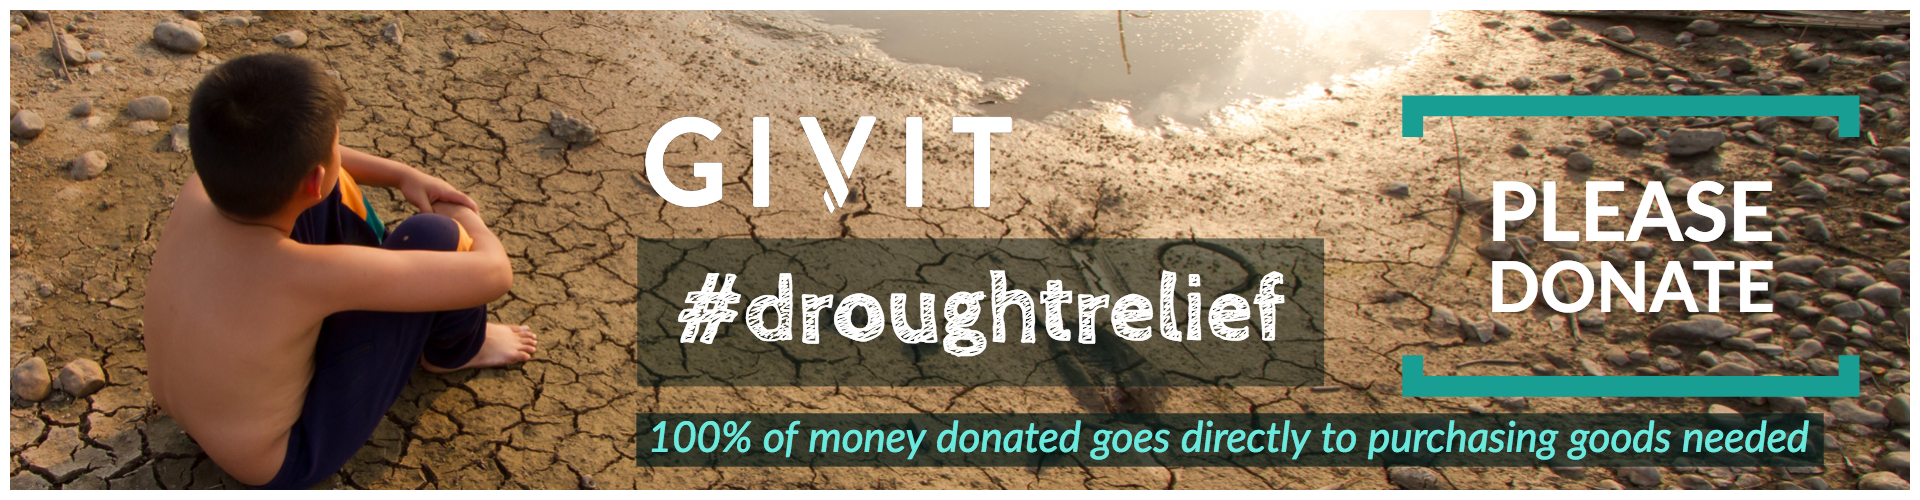 givit-drought-relief